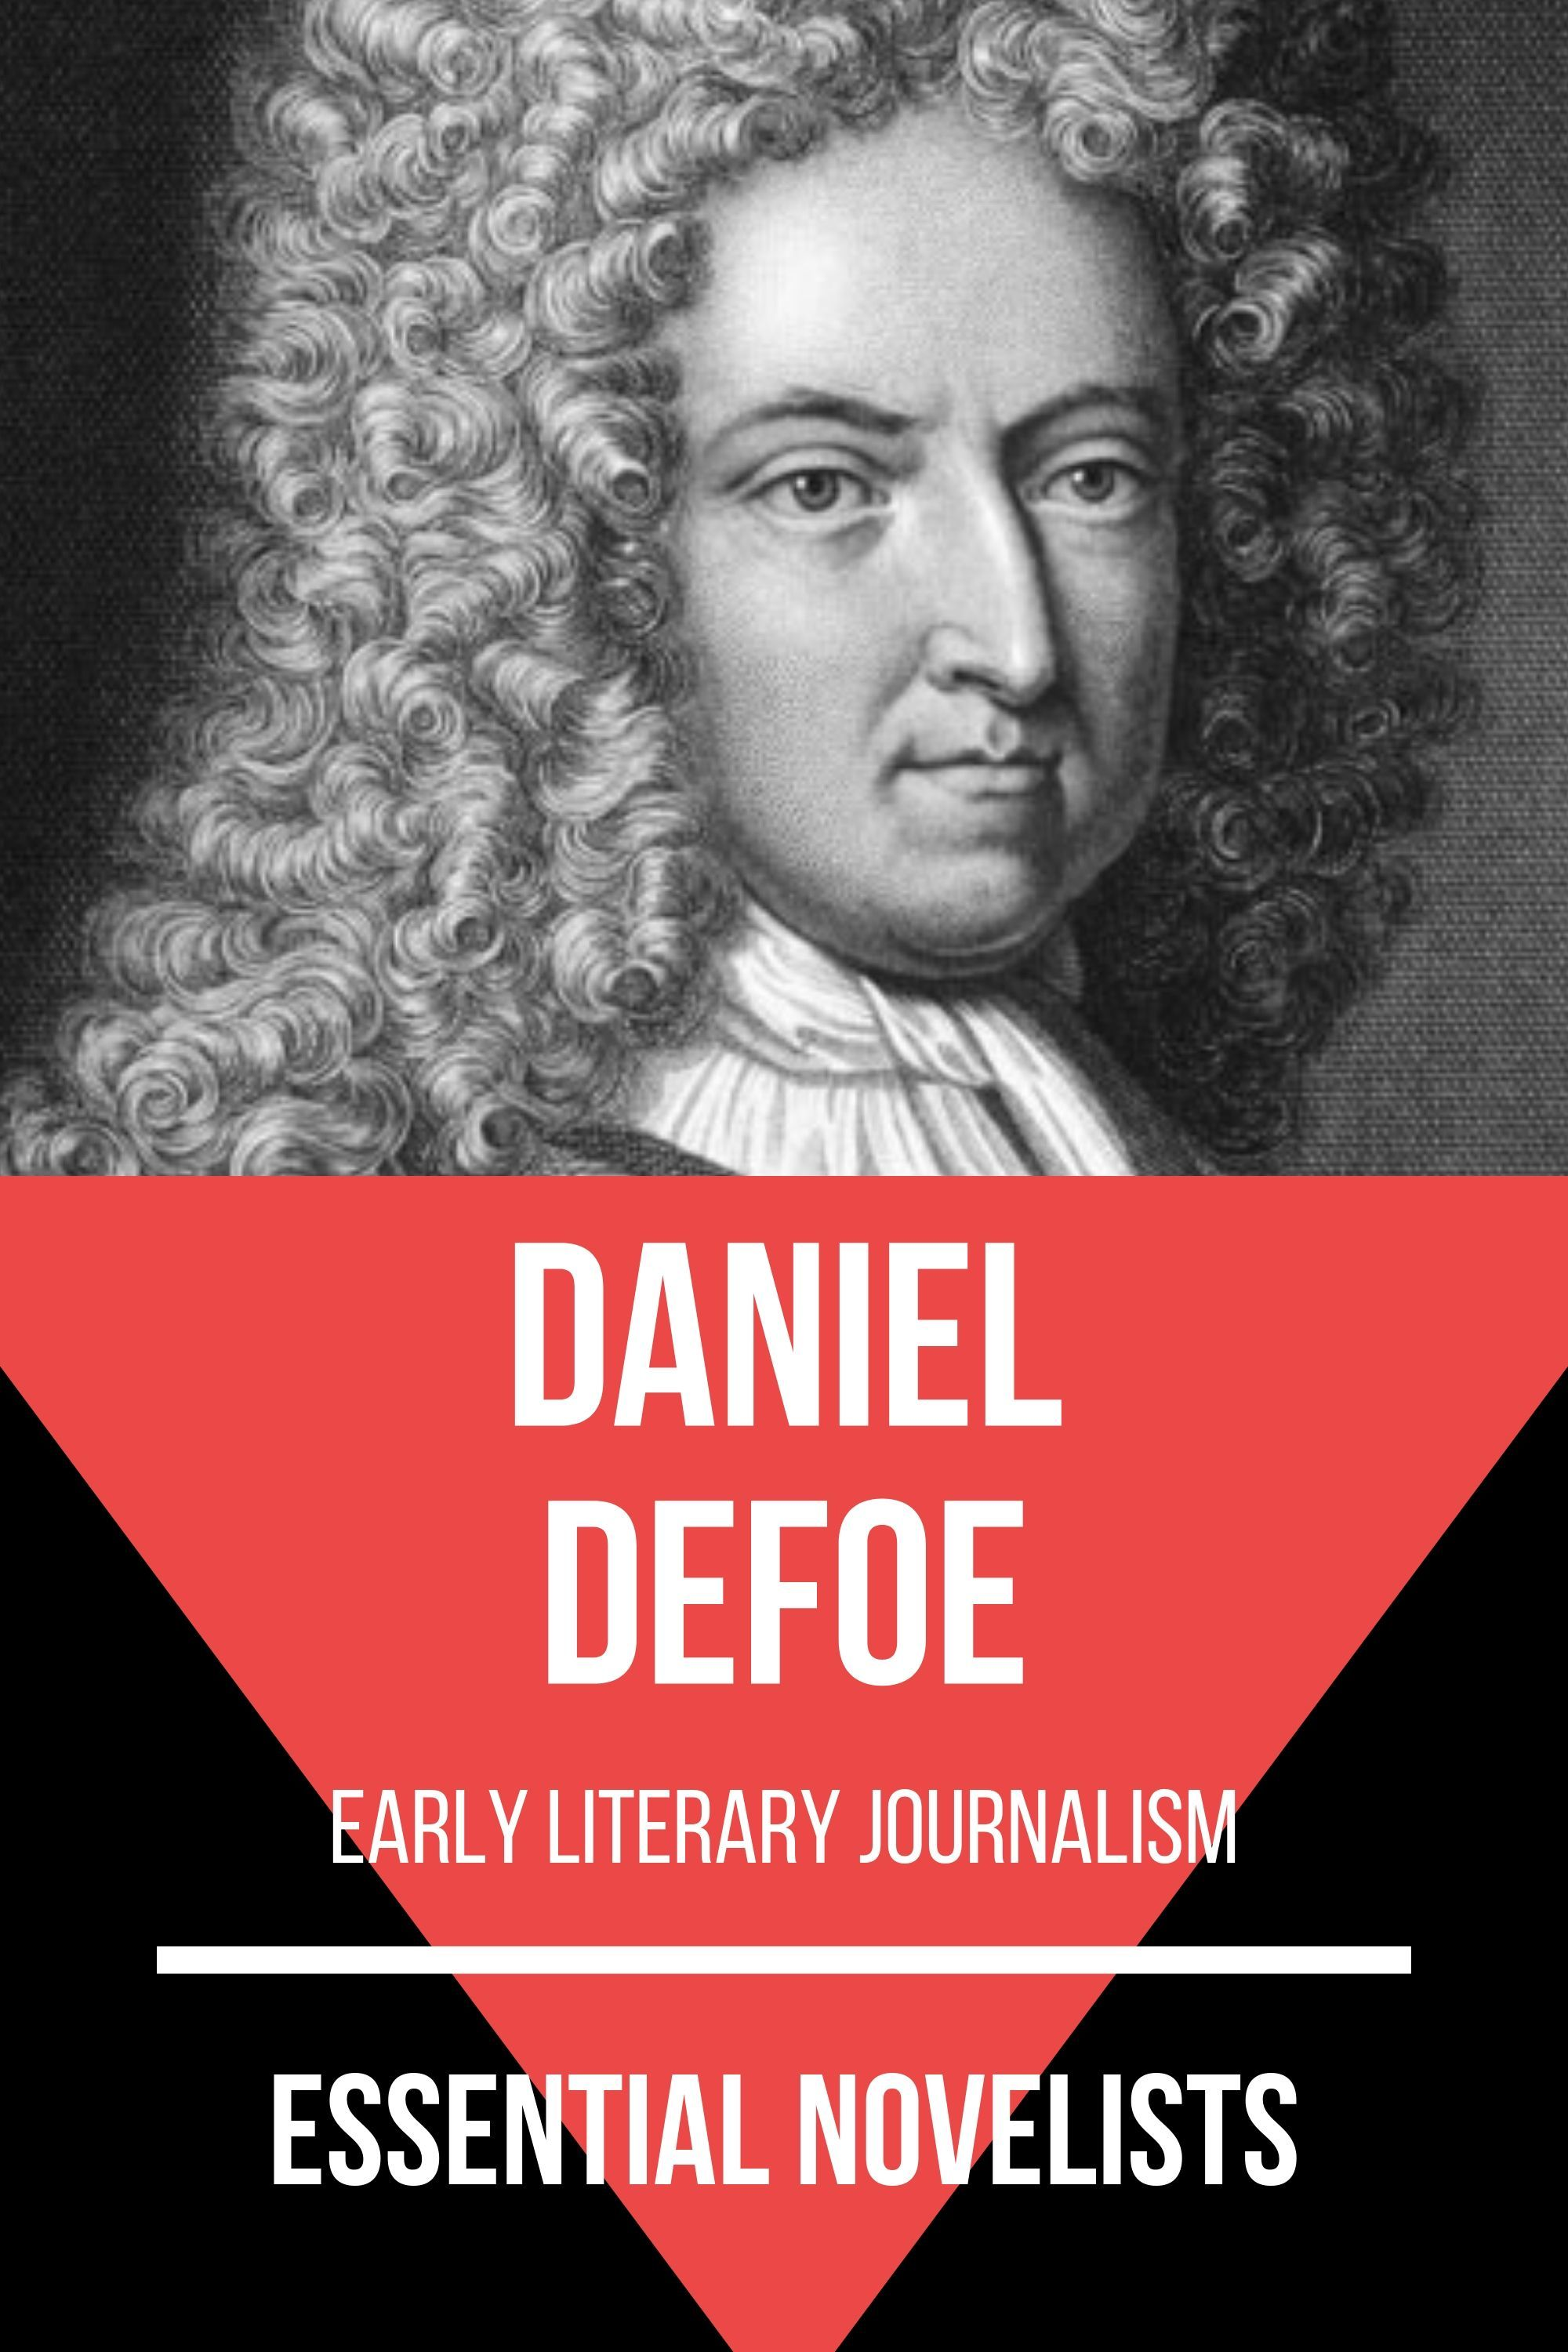 August Nemo Essential Novelists - Daniel Defoe daniel defoe the life and aventures of robinson crusoe to which is prefixed a biographical memoir of daniel de foe volume 3